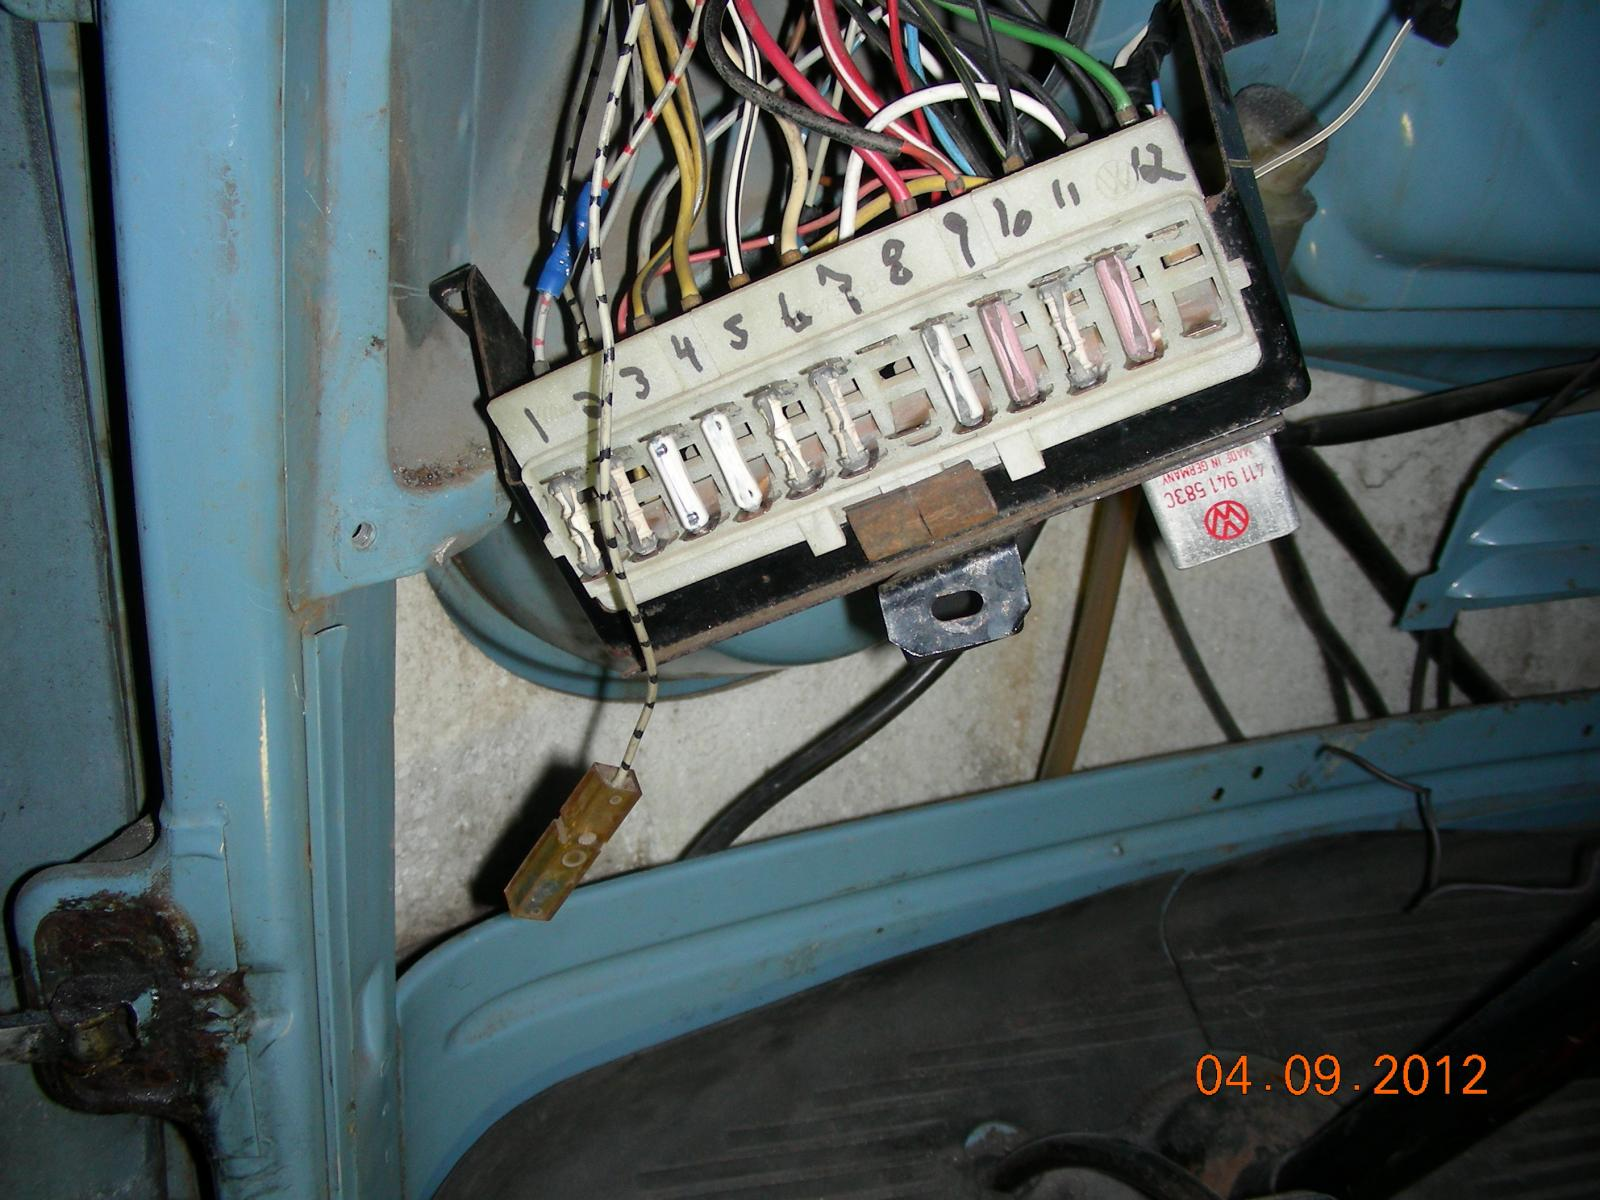 com bay window bus view topic how many relays  image have been reduced in size click image to view fullscreen